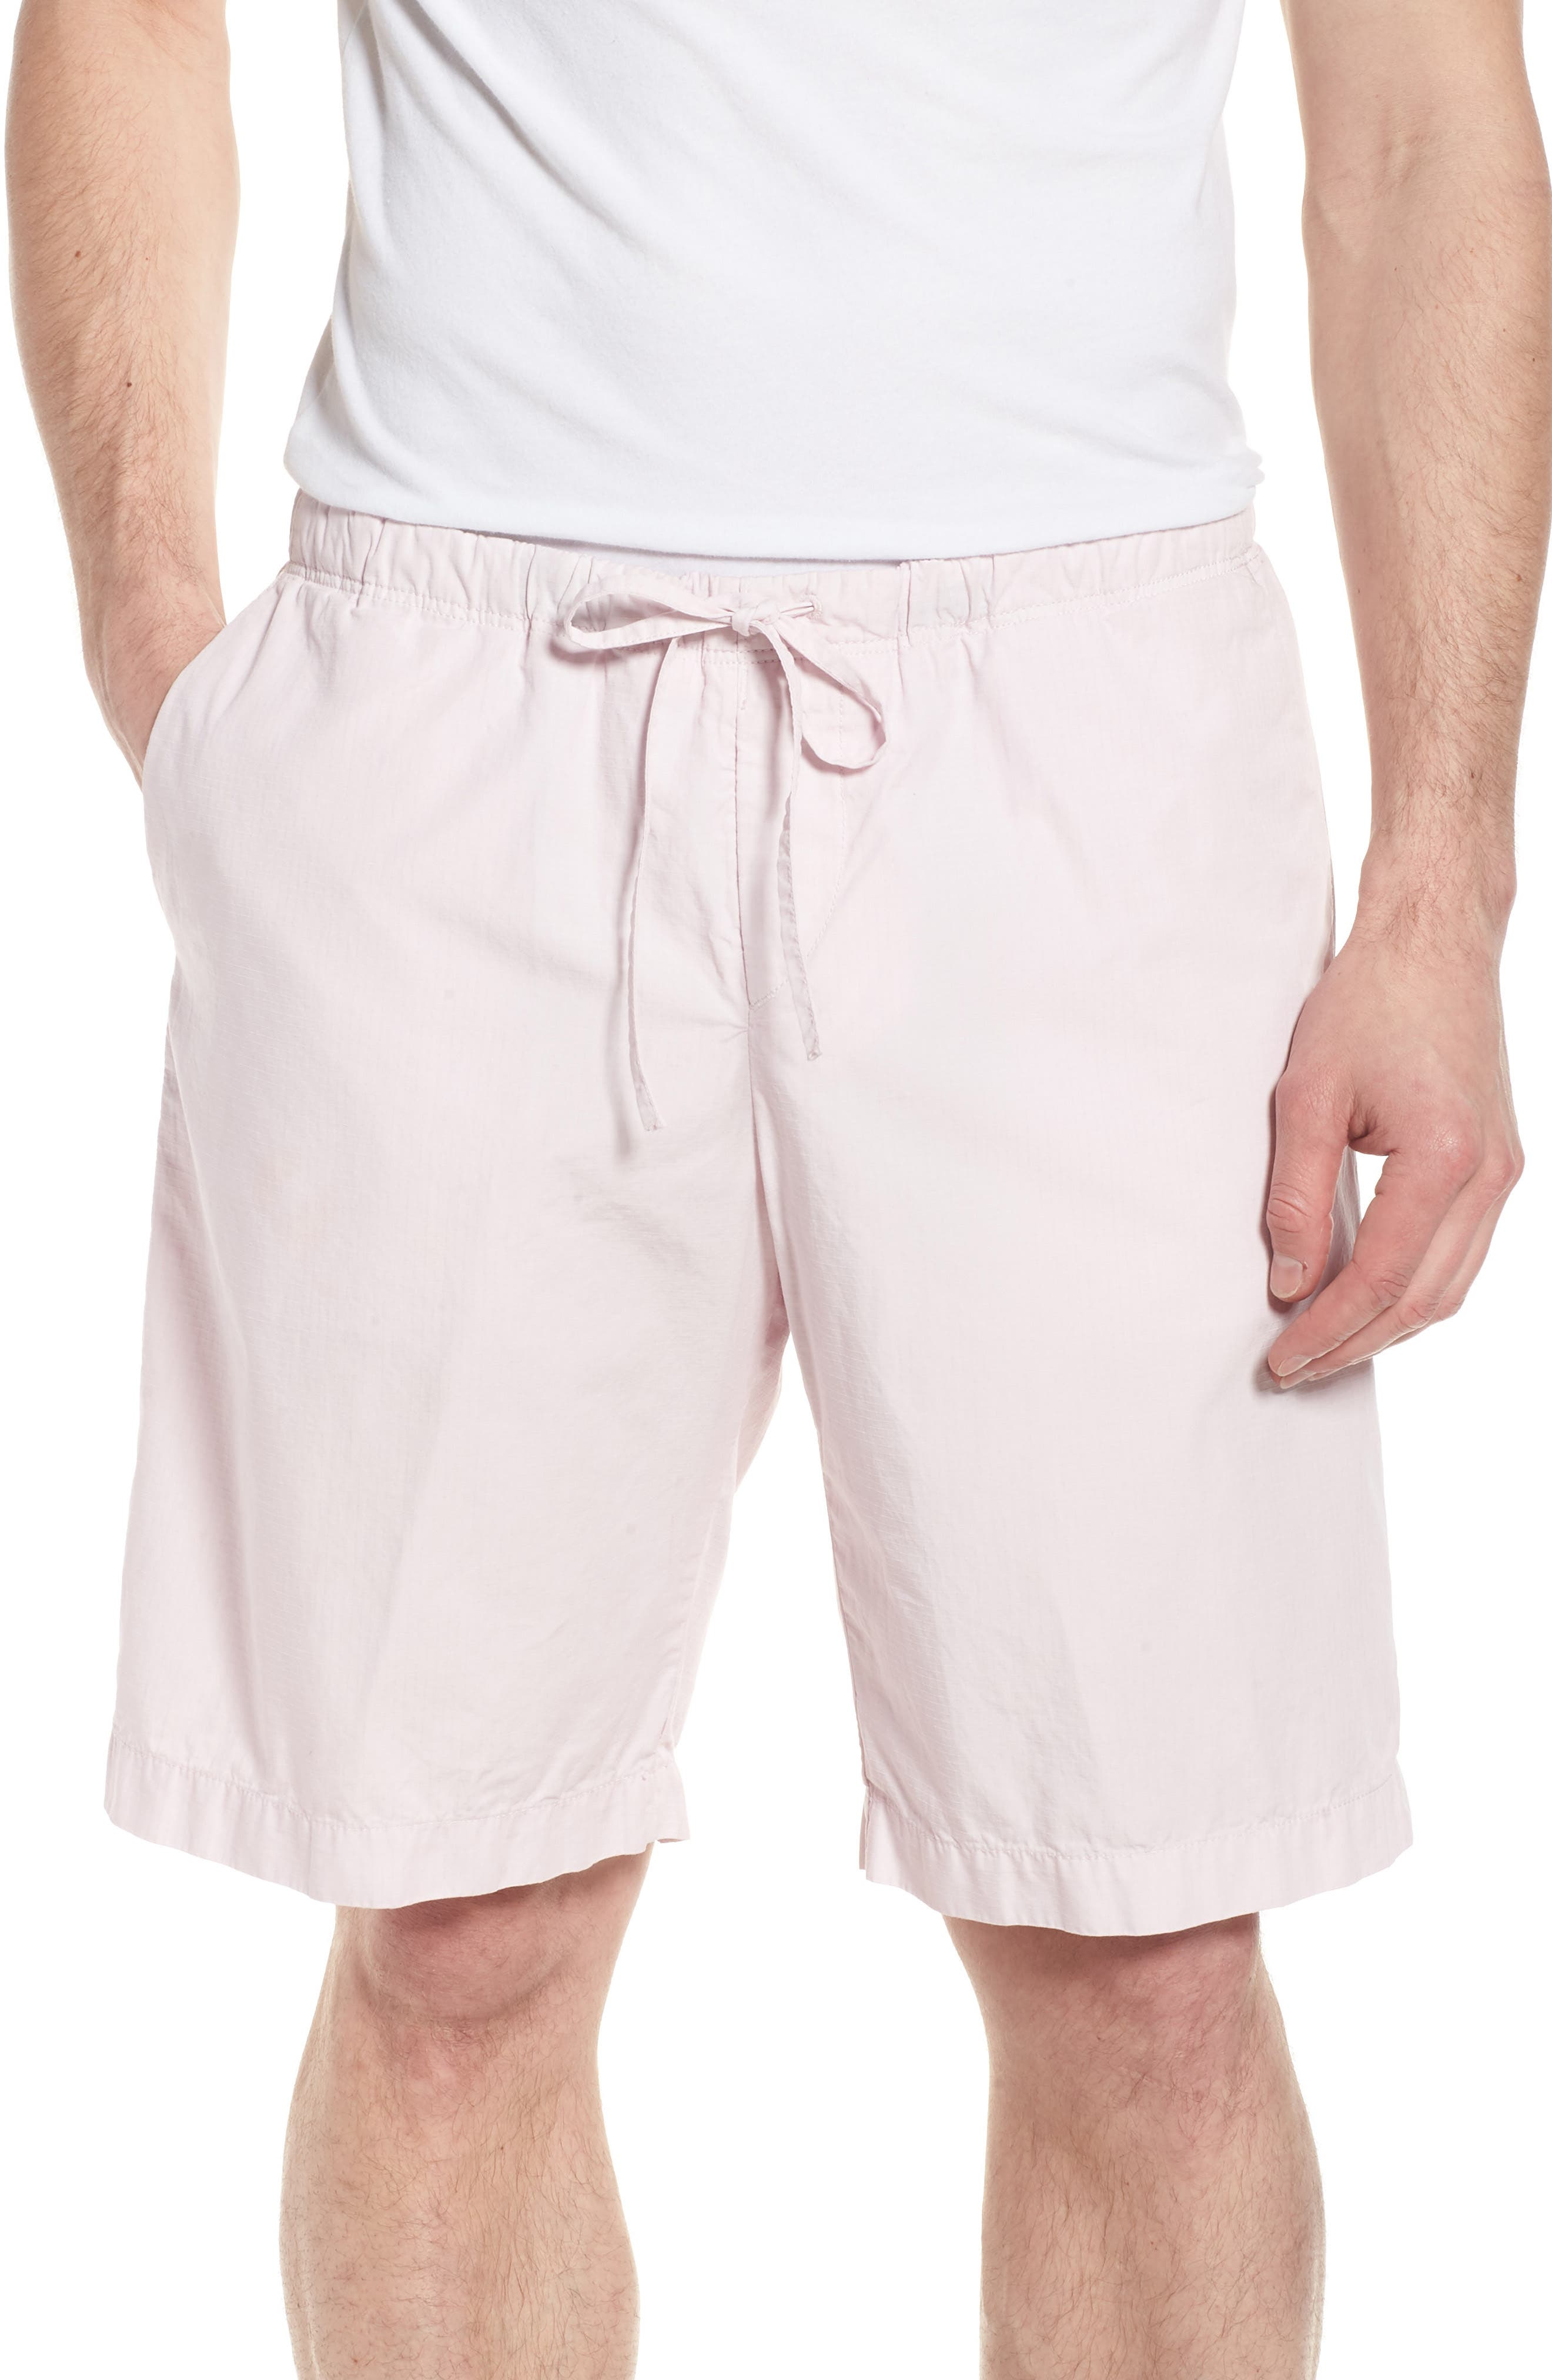 Passeo Cotton Shorts,                         Main,                         color, Pink